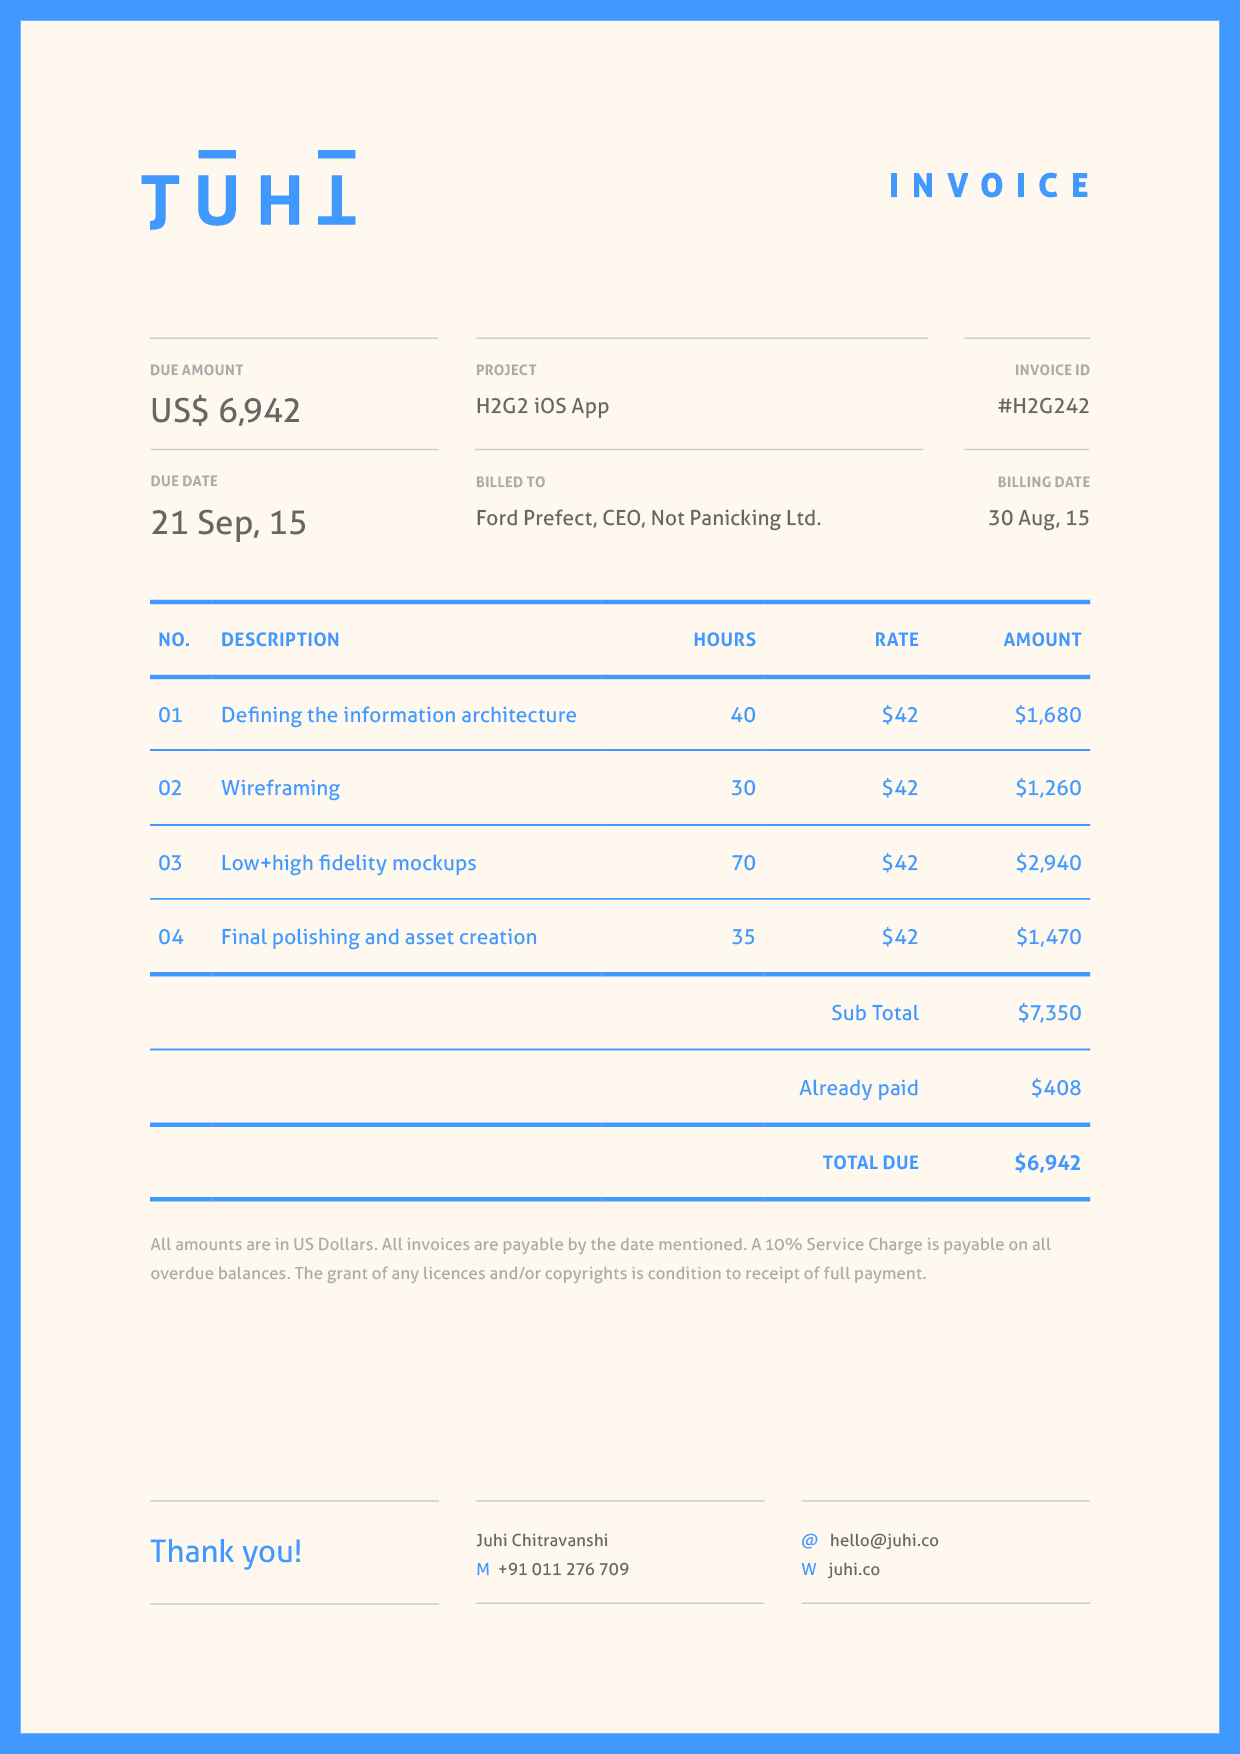 Usdgus  Unusual Dont Hold Back On Your Invoice  Inspiring Designs  With Handsome Invoice By Juhi Chitravanshi Follow With Extraordinary Bmw Invoice Pricing Also Recurring Invoice In Addition Paperless Invoice And Invoice Sent As Well As Law Firm Invoice Additionally Magento Invoice Template From Inspirationfeedcom With Usdgus  Handsome Dont Hold Back On Your Invoice  Inspiring Designs  With Extraordinary Invoice By Juhi Chitravanshi Follow And Unusual Bmw Invoice Pricing Also Recurring Invoice In Addition Paperless Invoice From Inspirationfeedcom